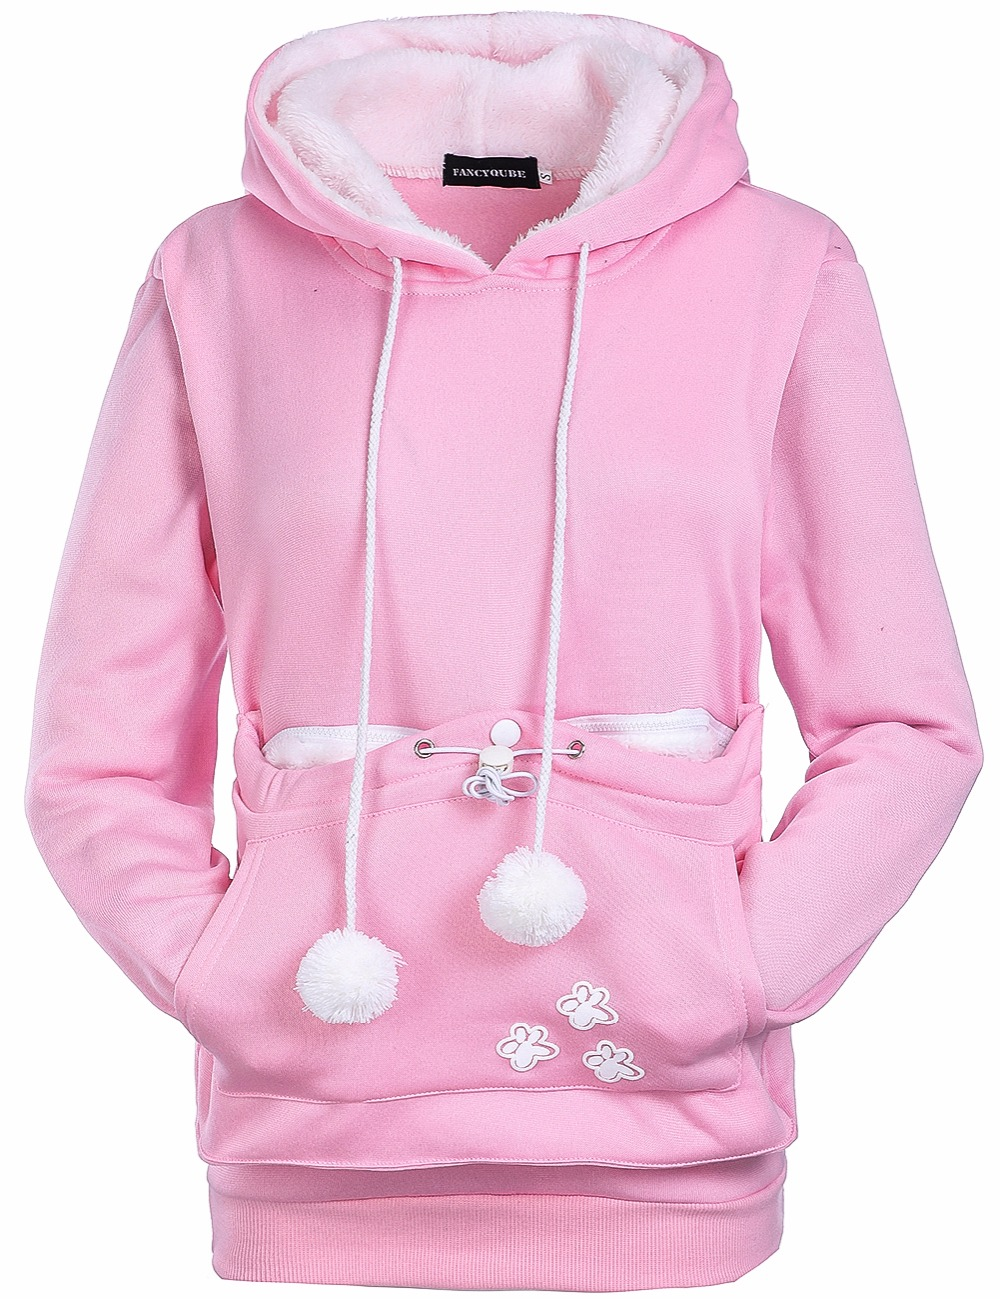 Dog Pet Hoodies For Casual Kangaroo Pullovers With Ears Sweatshirt 2XL Drop Shipping Cat Lovers Hoodies With Cuddle Pouch